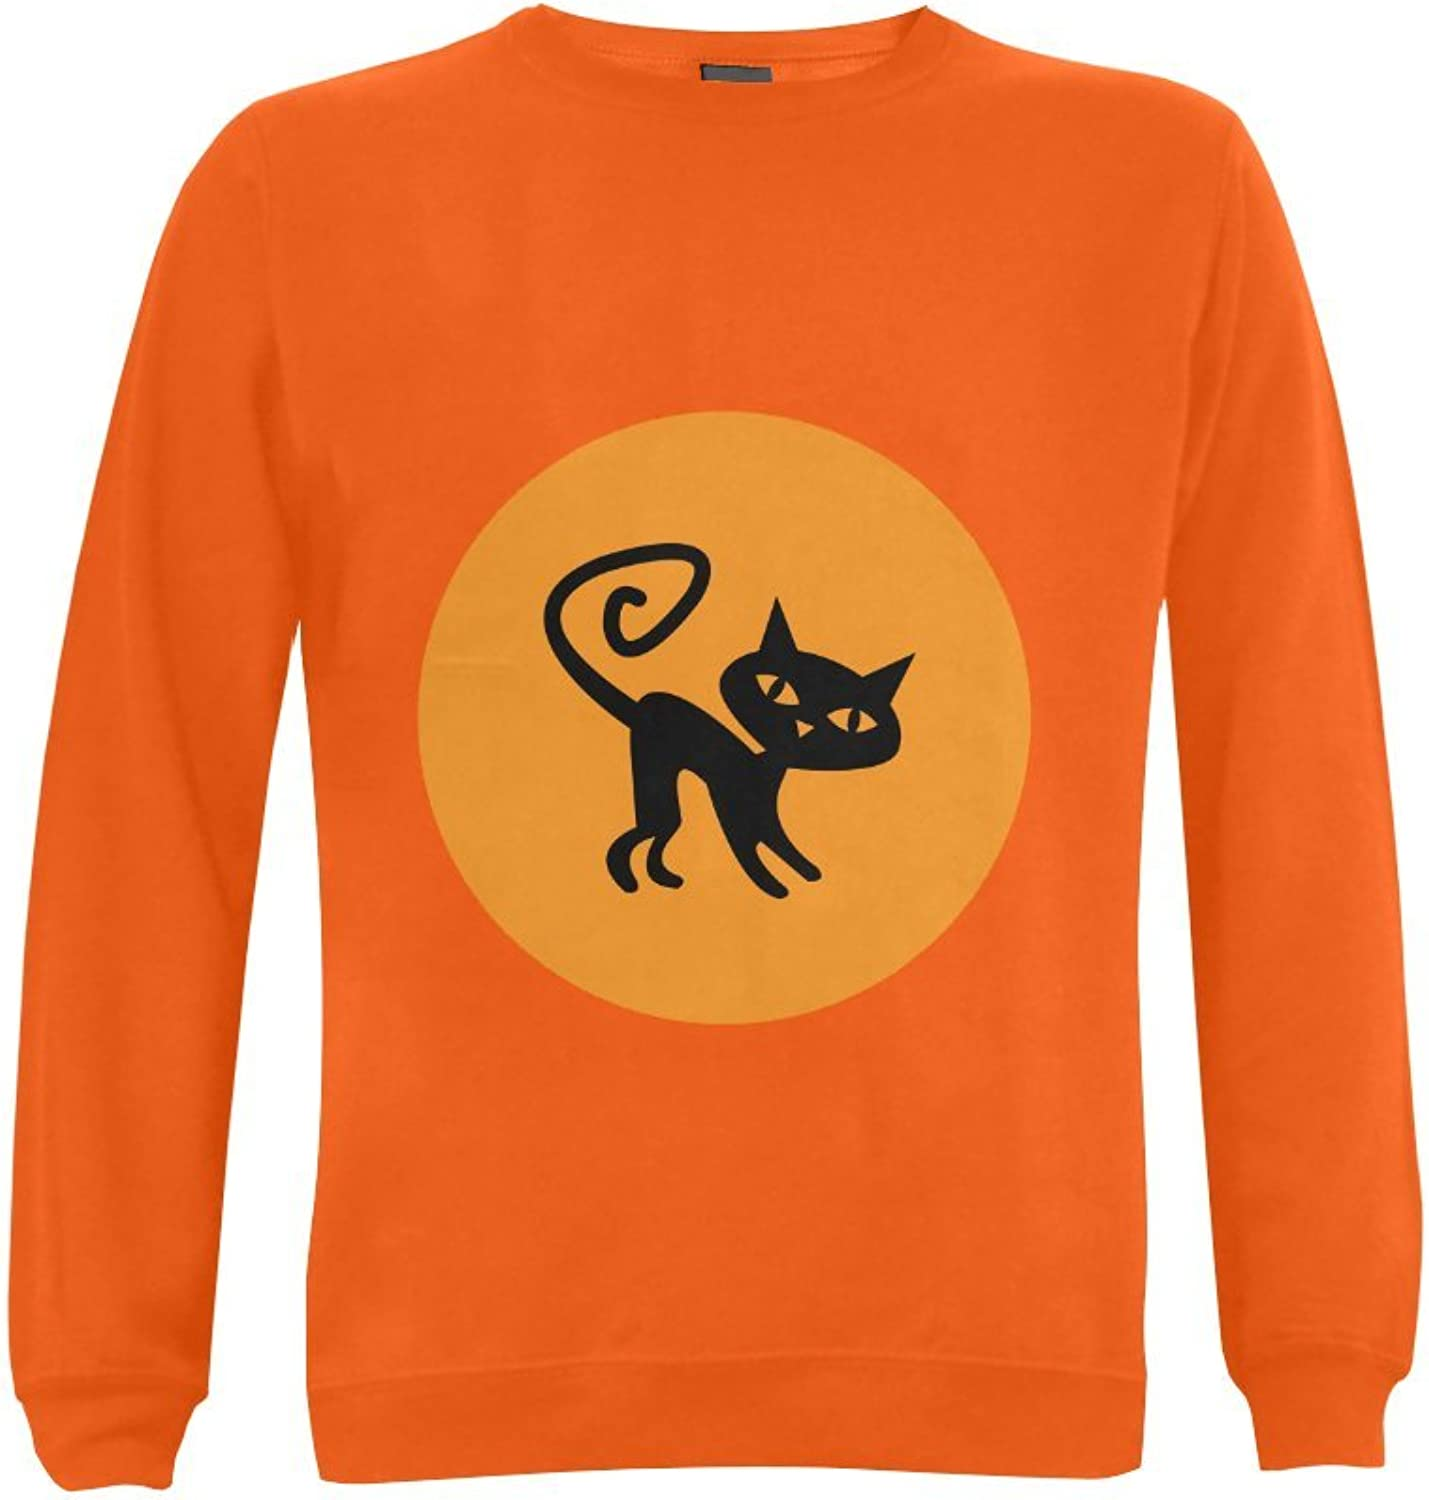 CERLYRUAN Halloween Moon Cat 50% Cotton 50% PolyesterPreshrunk Crewneck Men's Sweatshirt